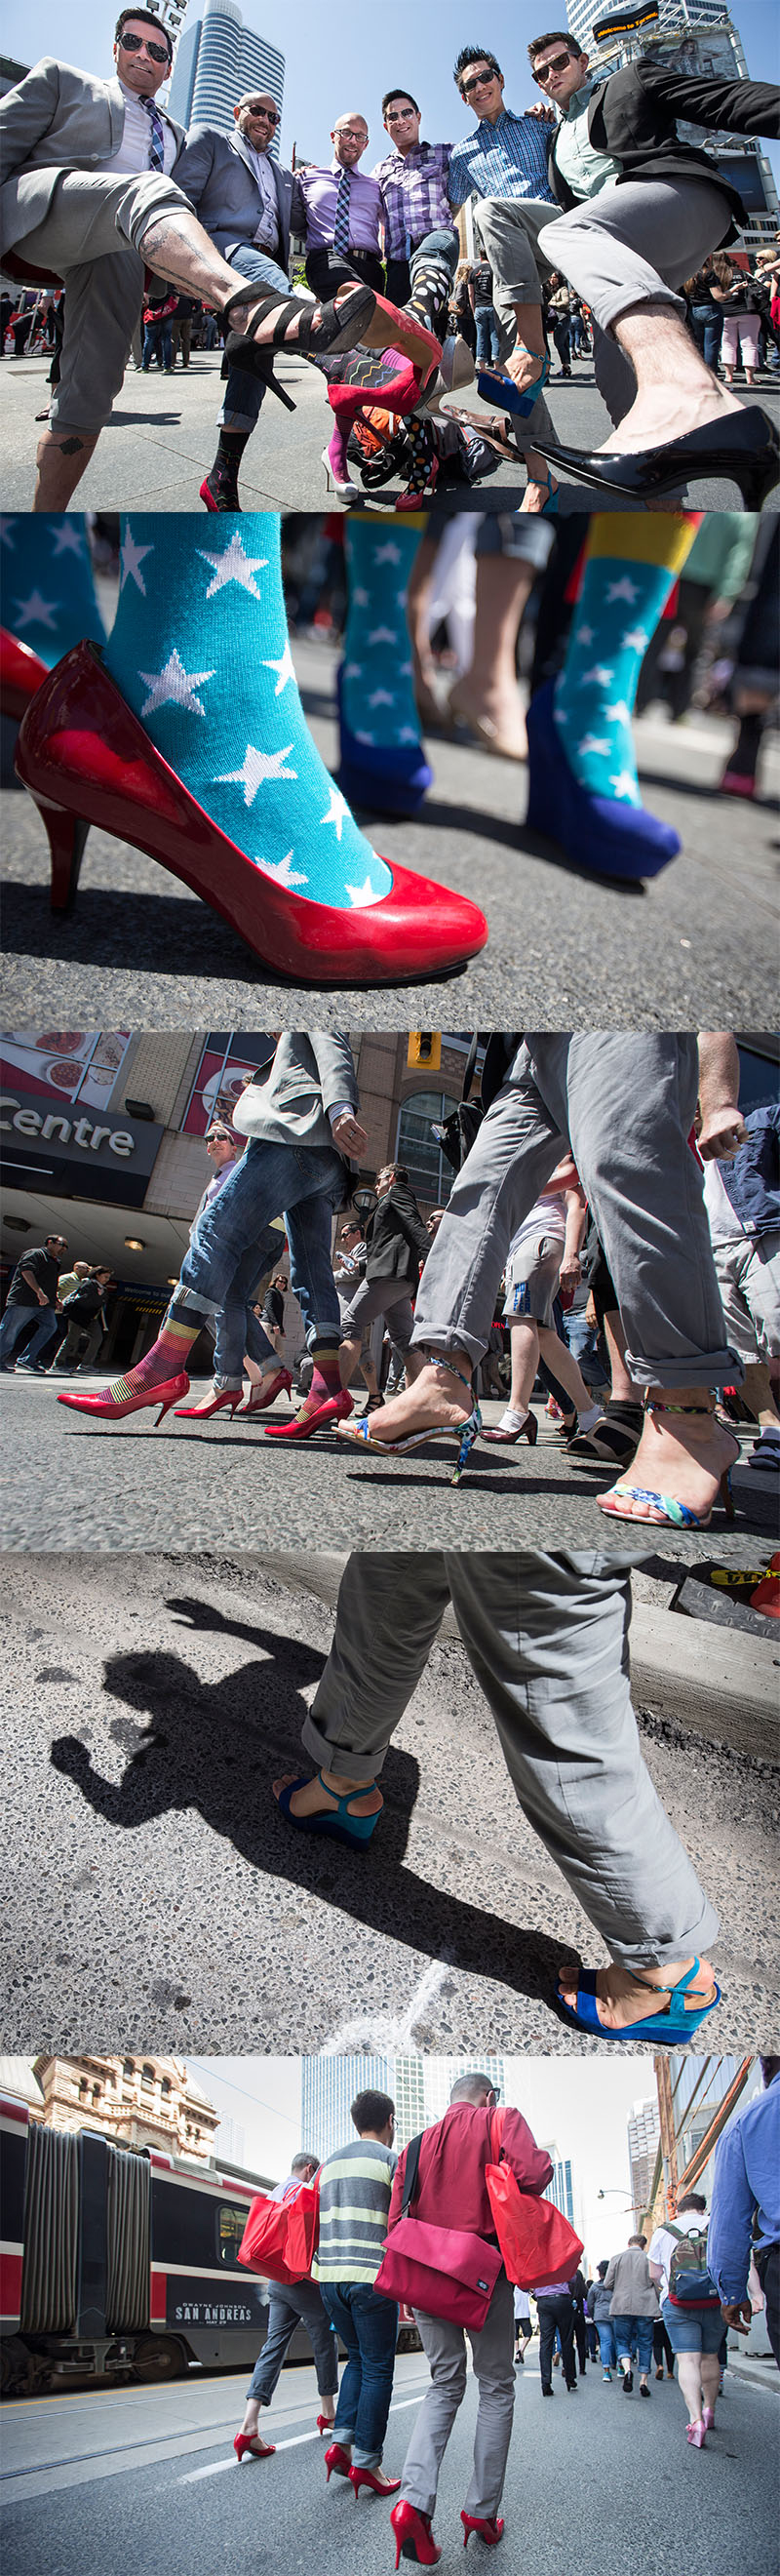 walking a mile in her shoes english literature essay Baird founded the charity event walk a mile in her shoes: the international men's march to stop rape, sexual assault, and gender violence in an effort to engage more men in the fight against sexual violence and domestic abuse in the united states and abroad (walk a mile in her shoes, nd.